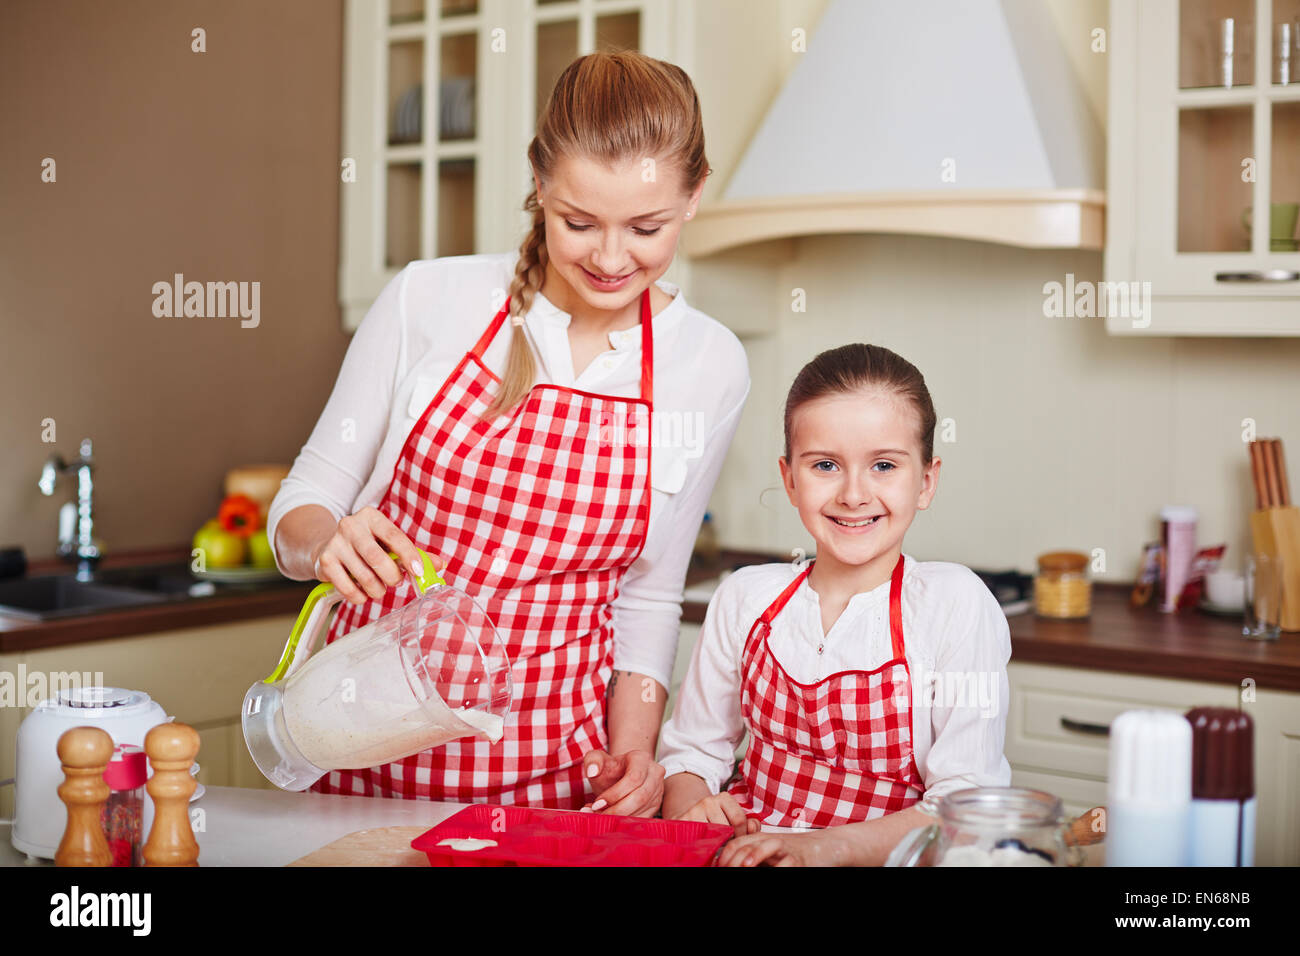 Adorable girl and her mother filling in muffin forms with liquid dough near by - Stock Image